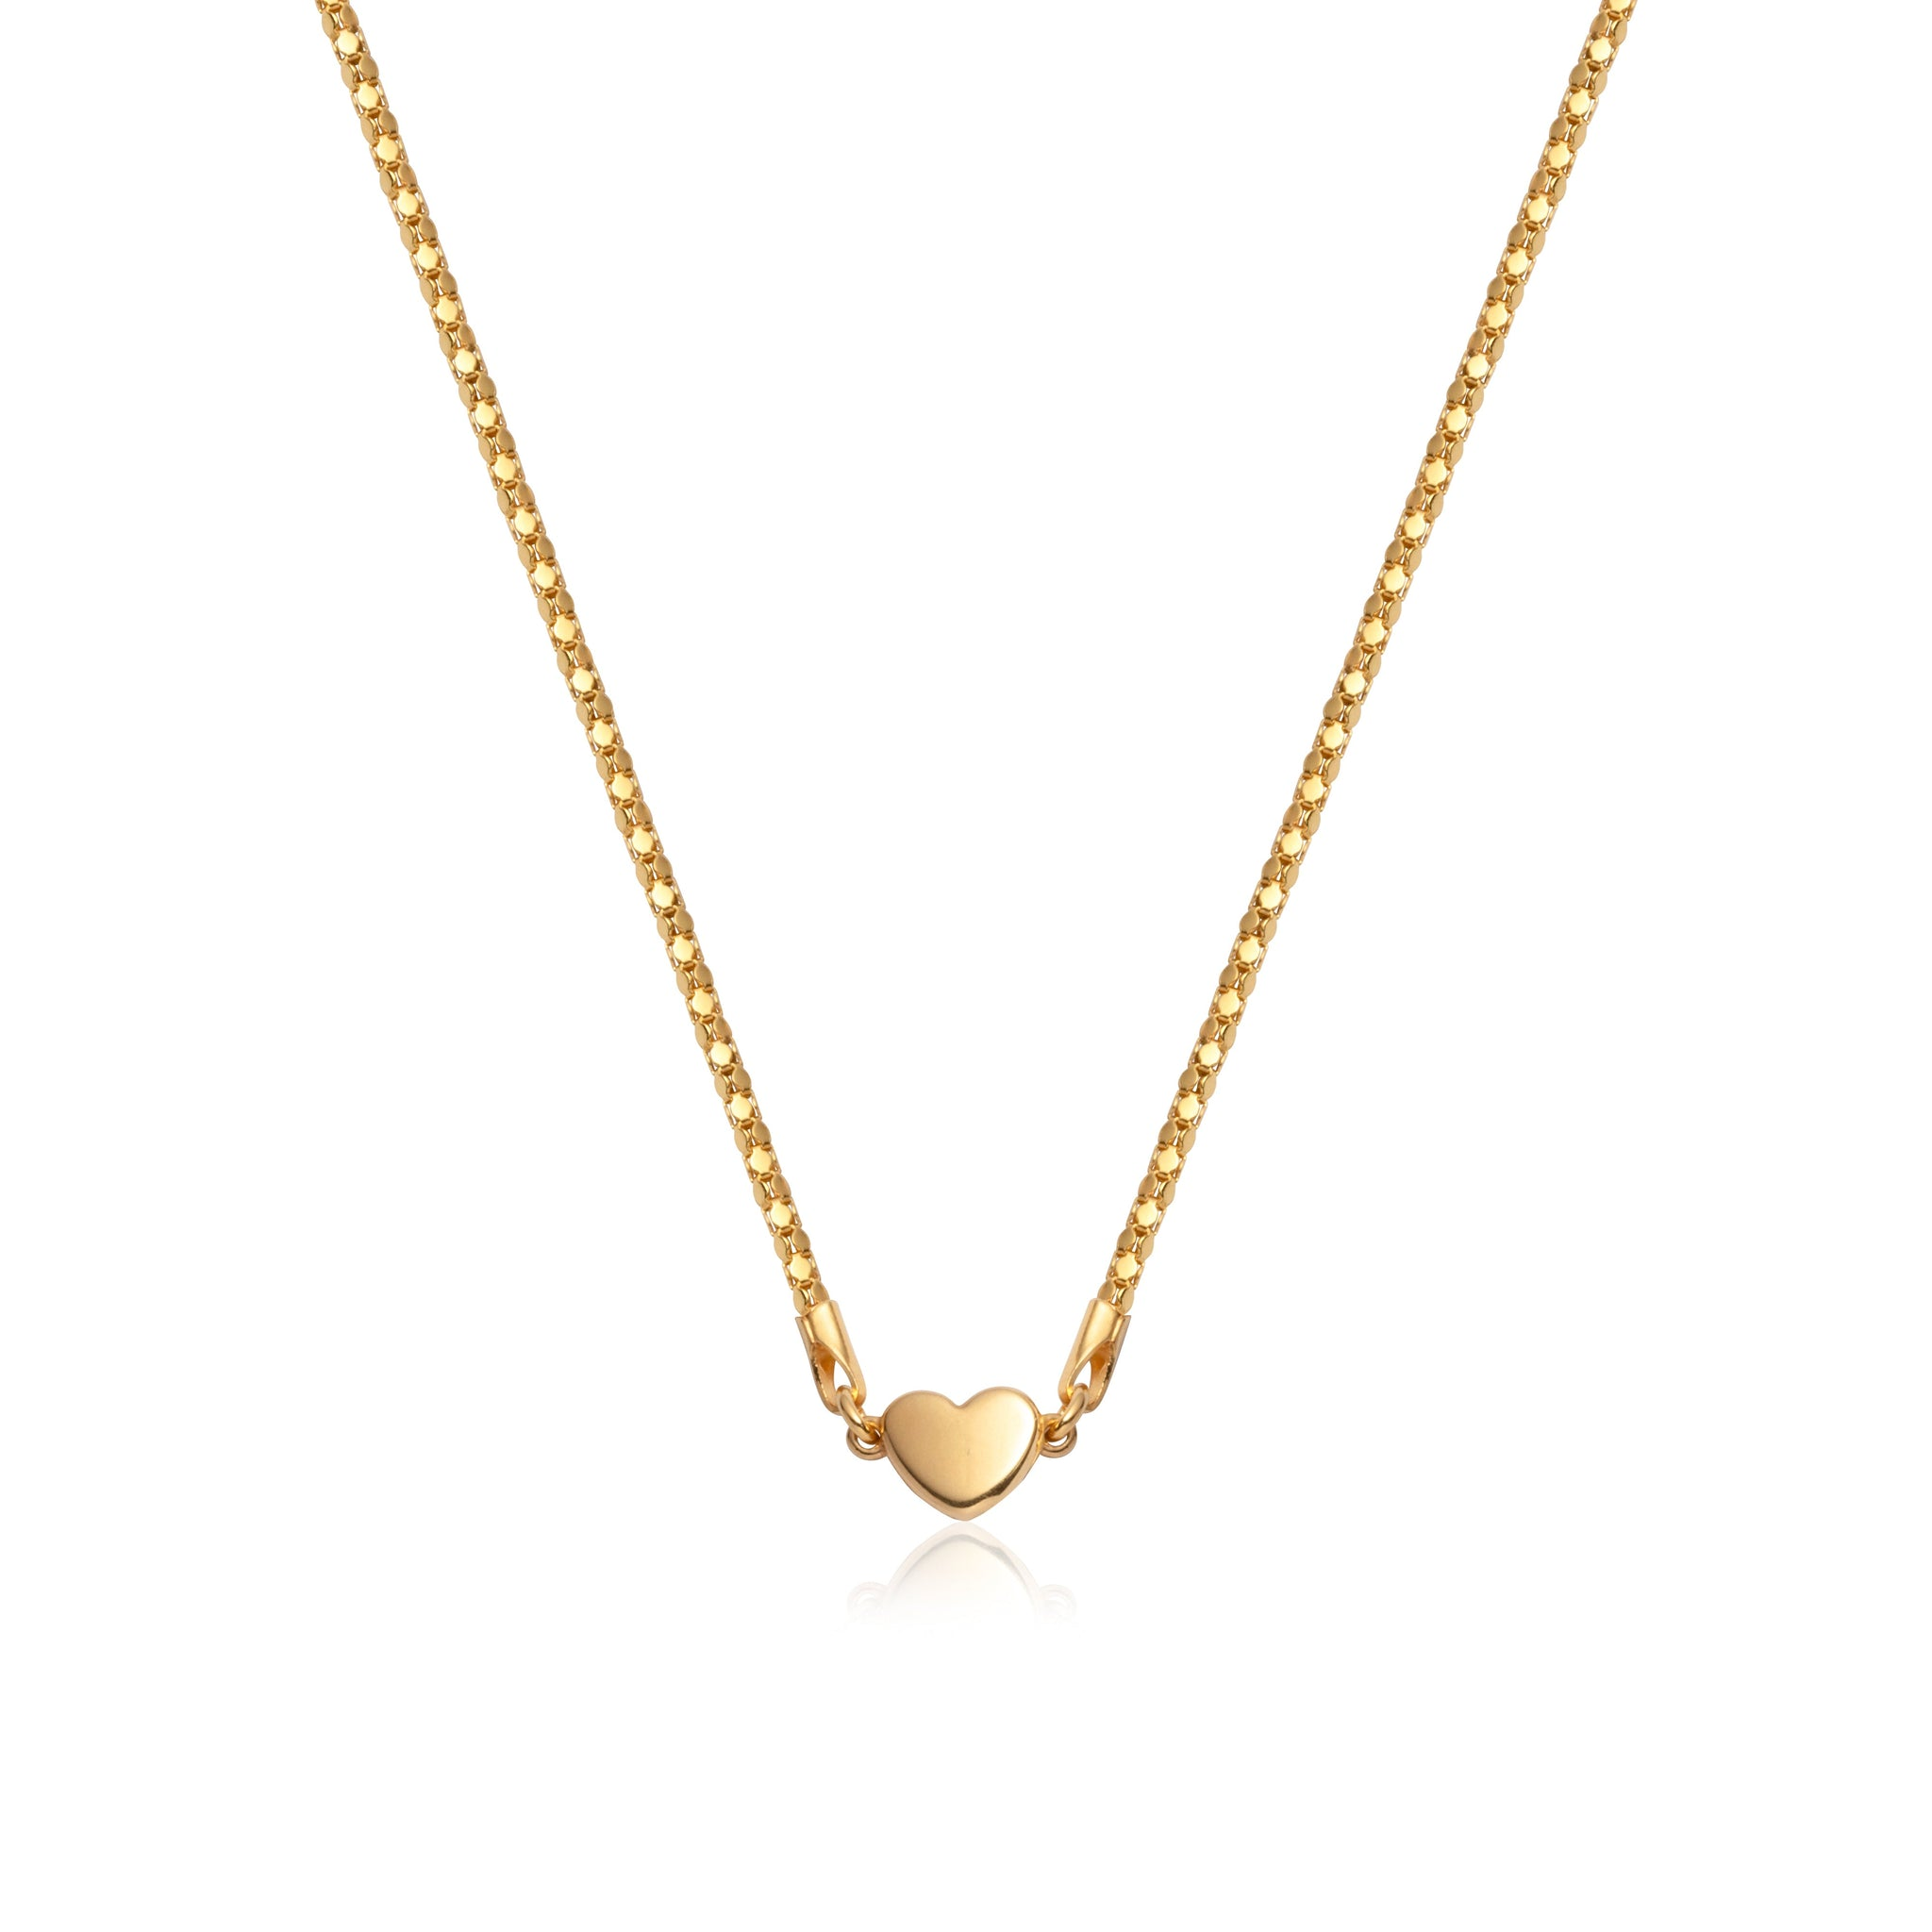 Heart Coreana Chain Necklace 17 in (Gold)